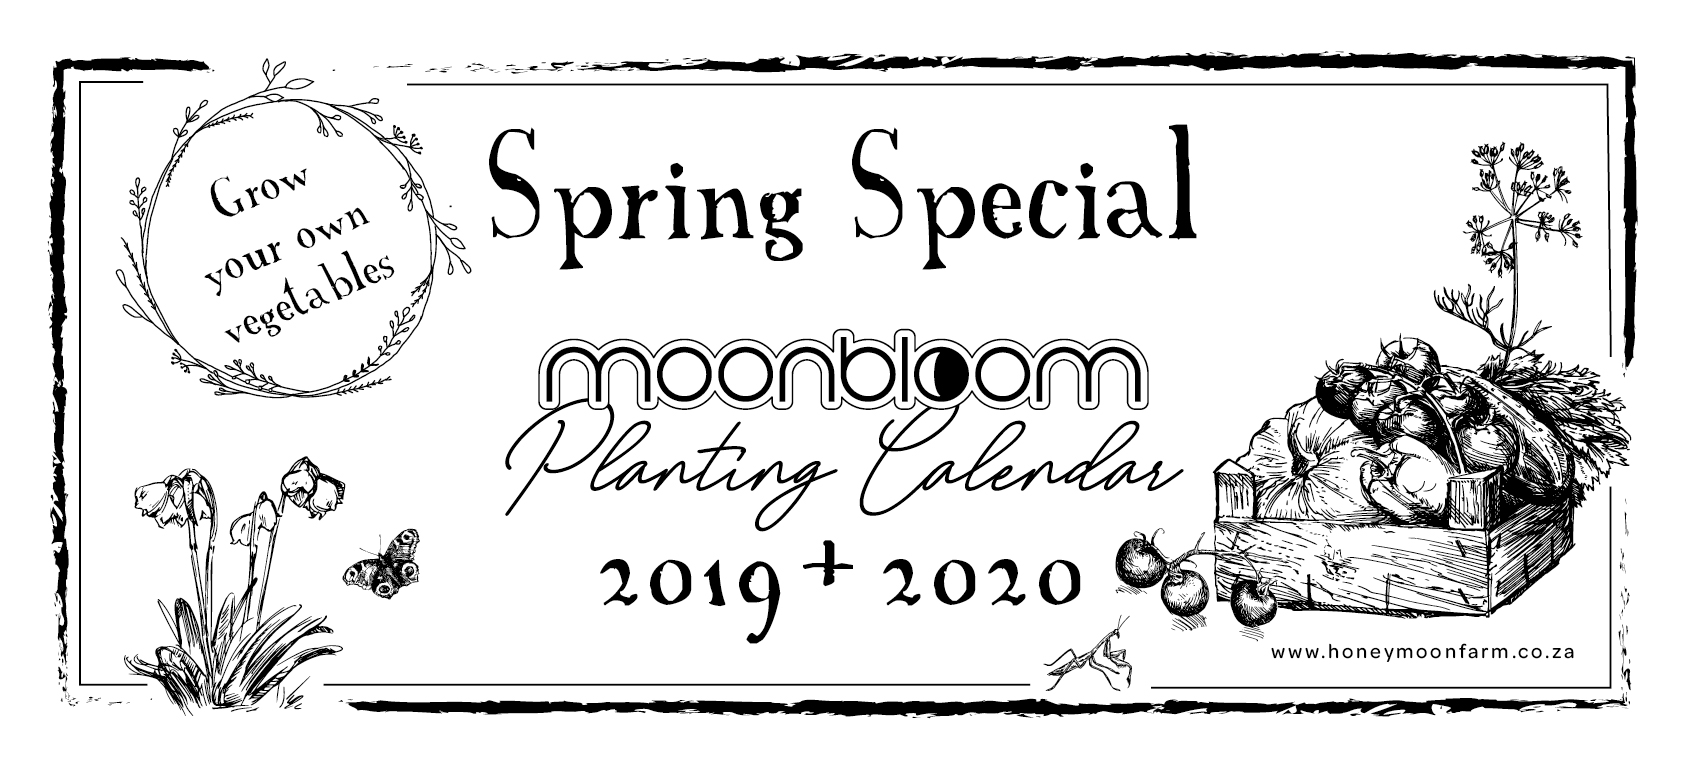 spring special moonbloom planting calendar south africa